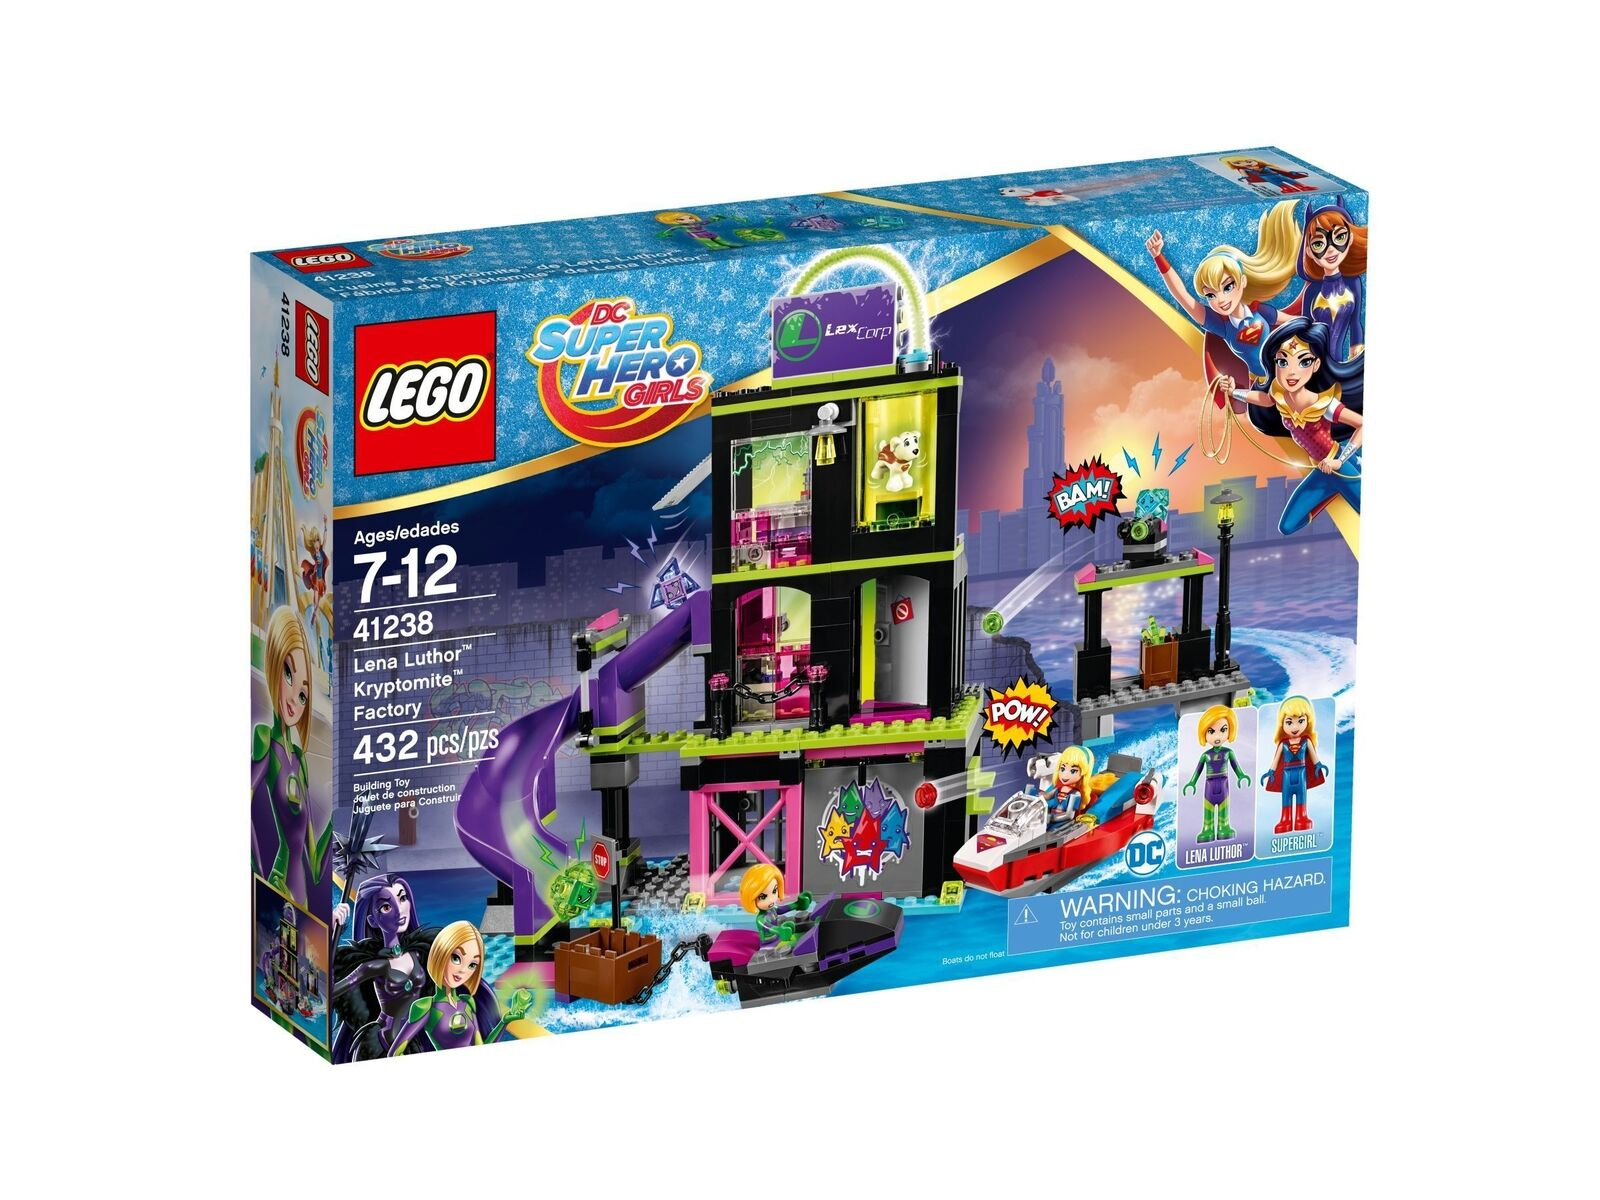 Lego Dc Super Hero Fille 41238 la Kryptomite™ . Neuf Emballage D'Origine Misb